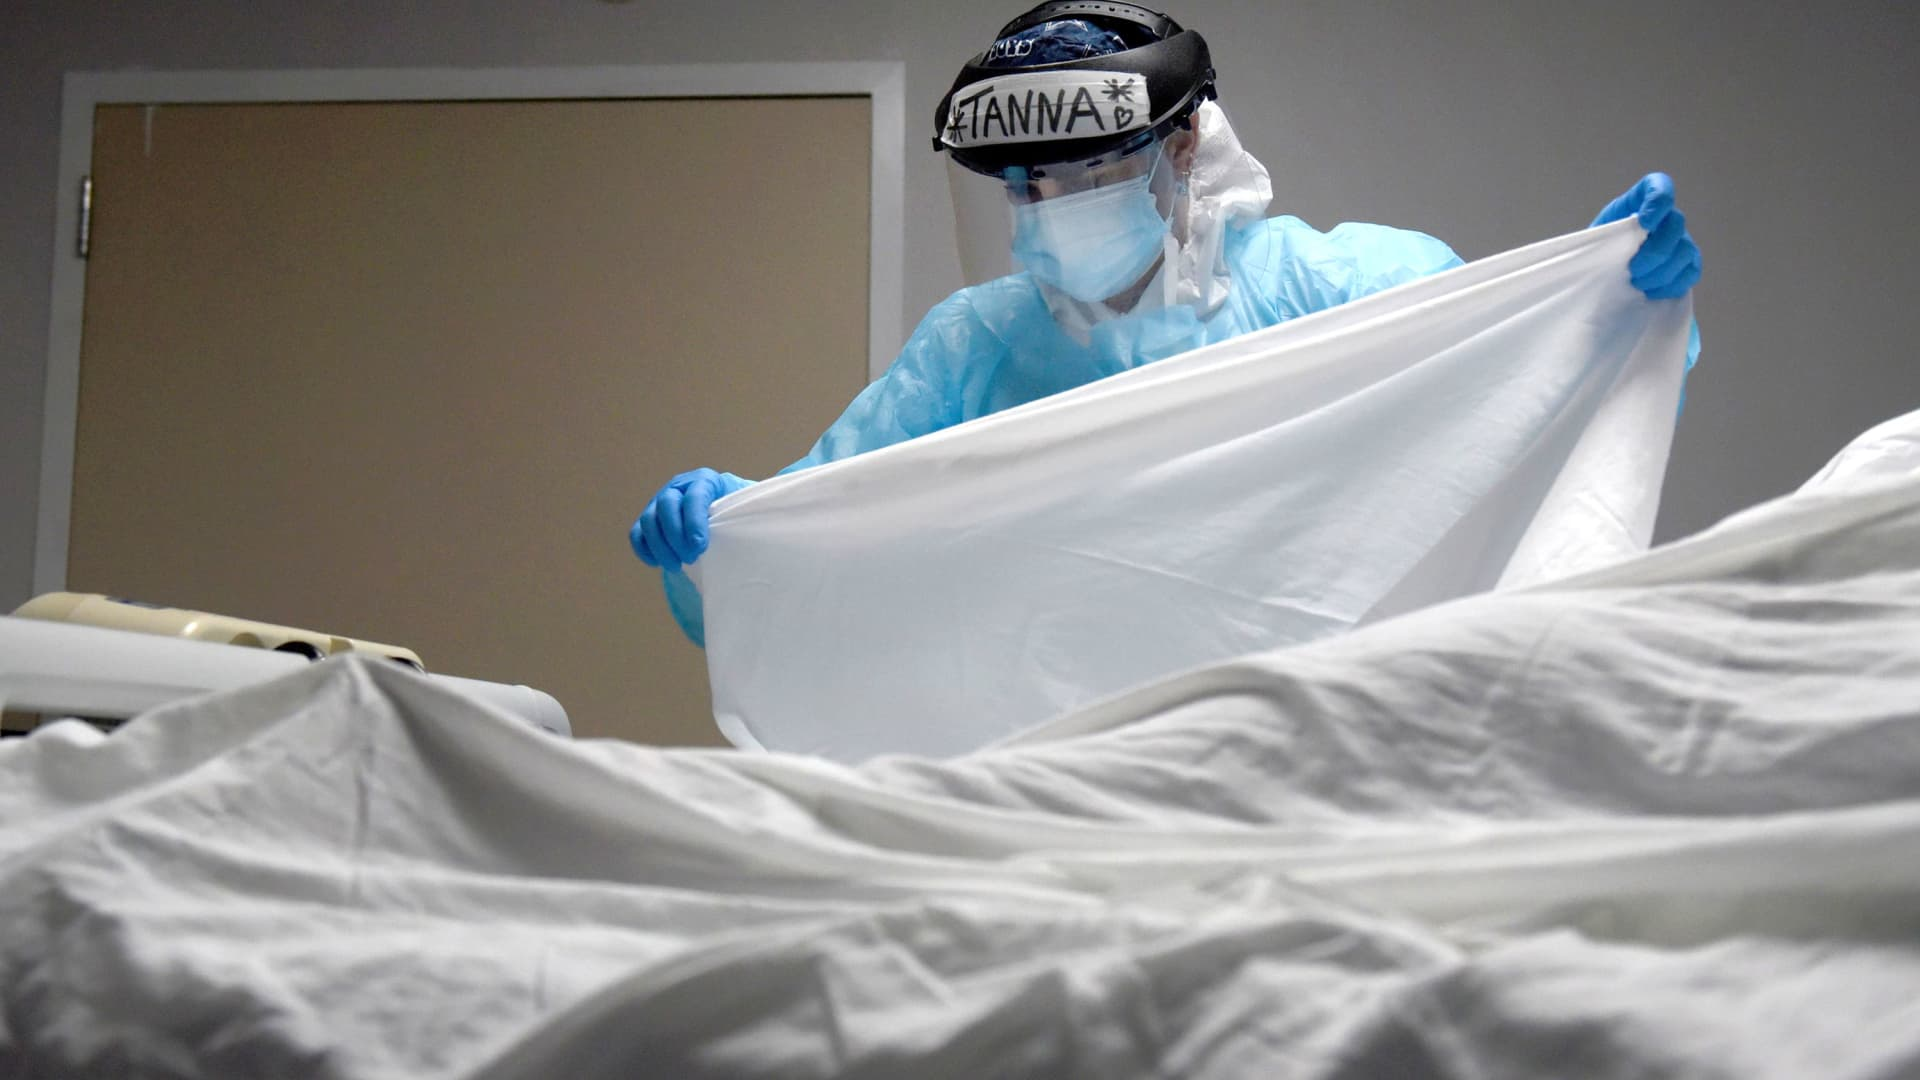 Tanna Ingraham places a sheet over the body of a patient who died inside the coronavirus disease (COVID-19) unit at United Memorial Medical Center in Houston, Texas, December 30, 2020.